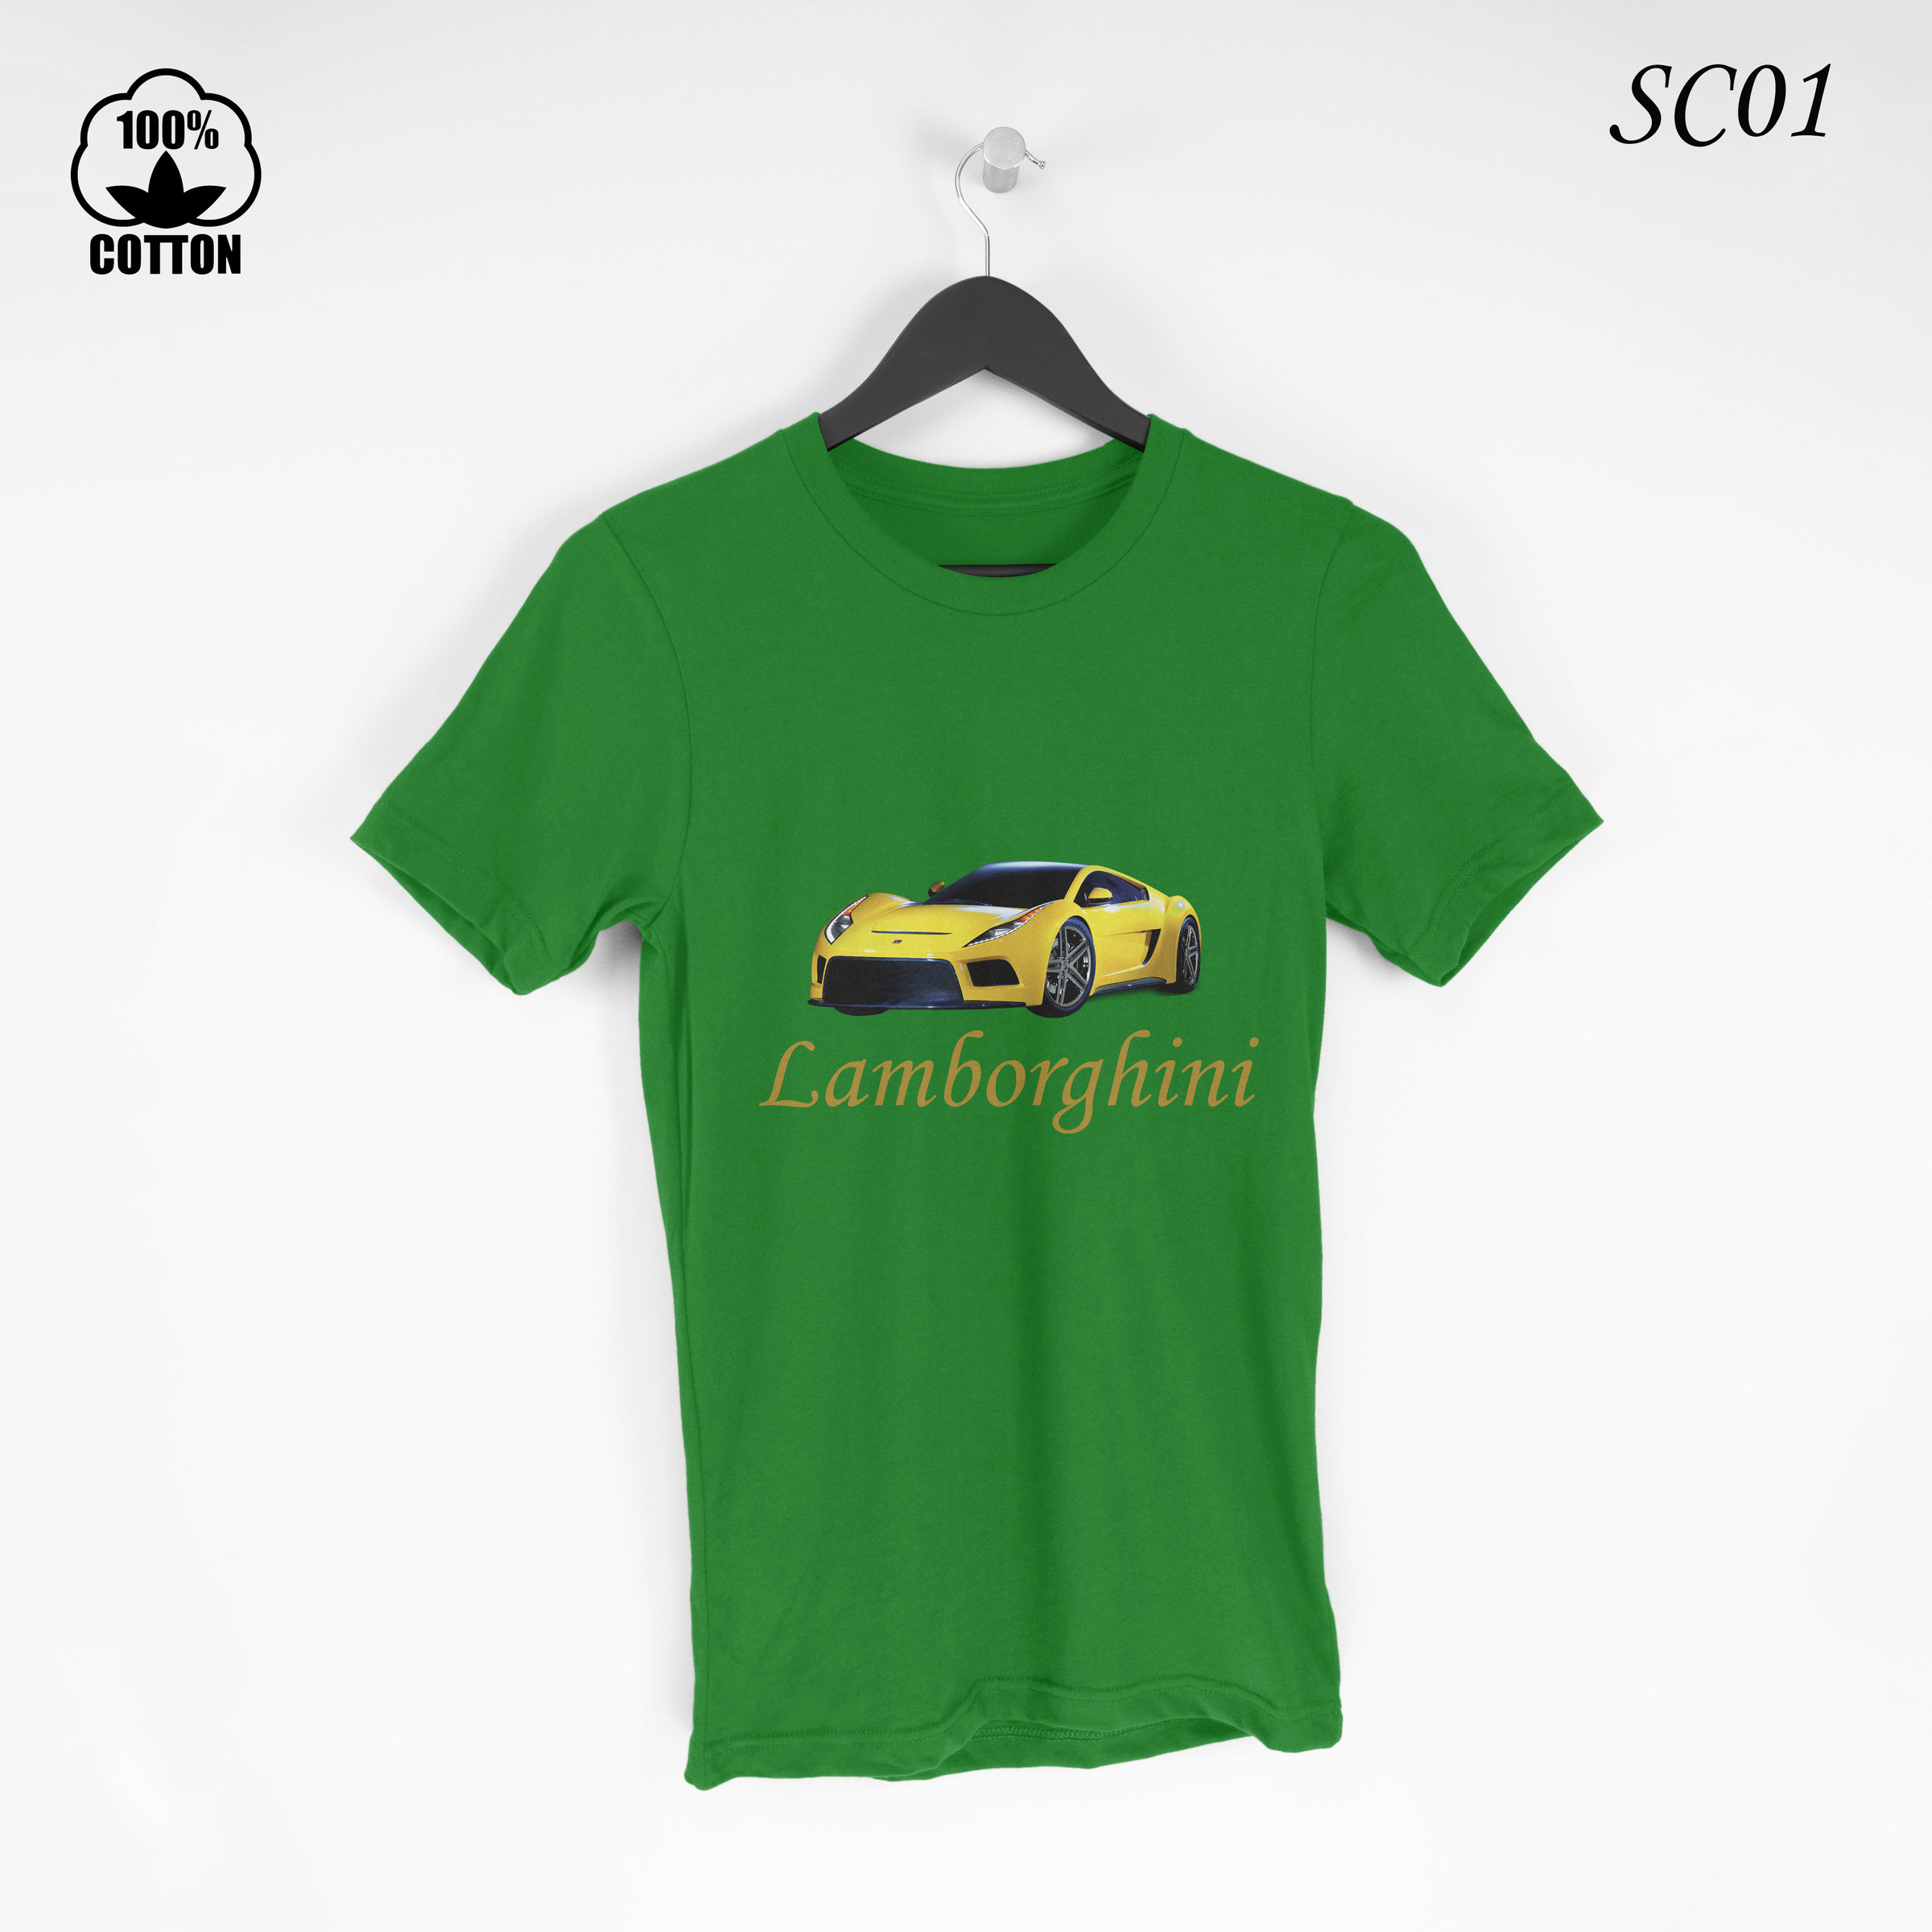 SC01.NEW DESIGN Lamborgini Car TShirt men's 8jpg.jpg